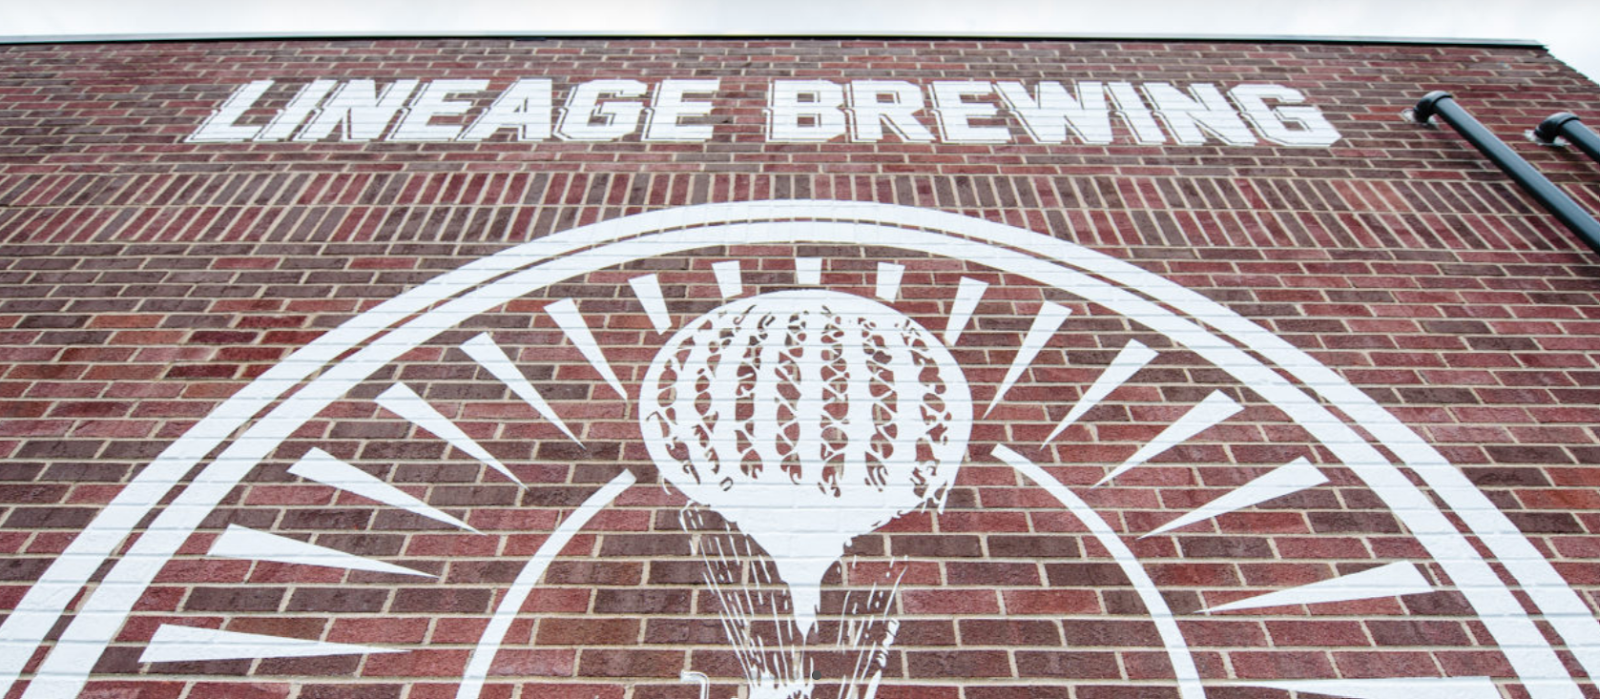 Brick wall emblazoned with Lineage Brewing logo